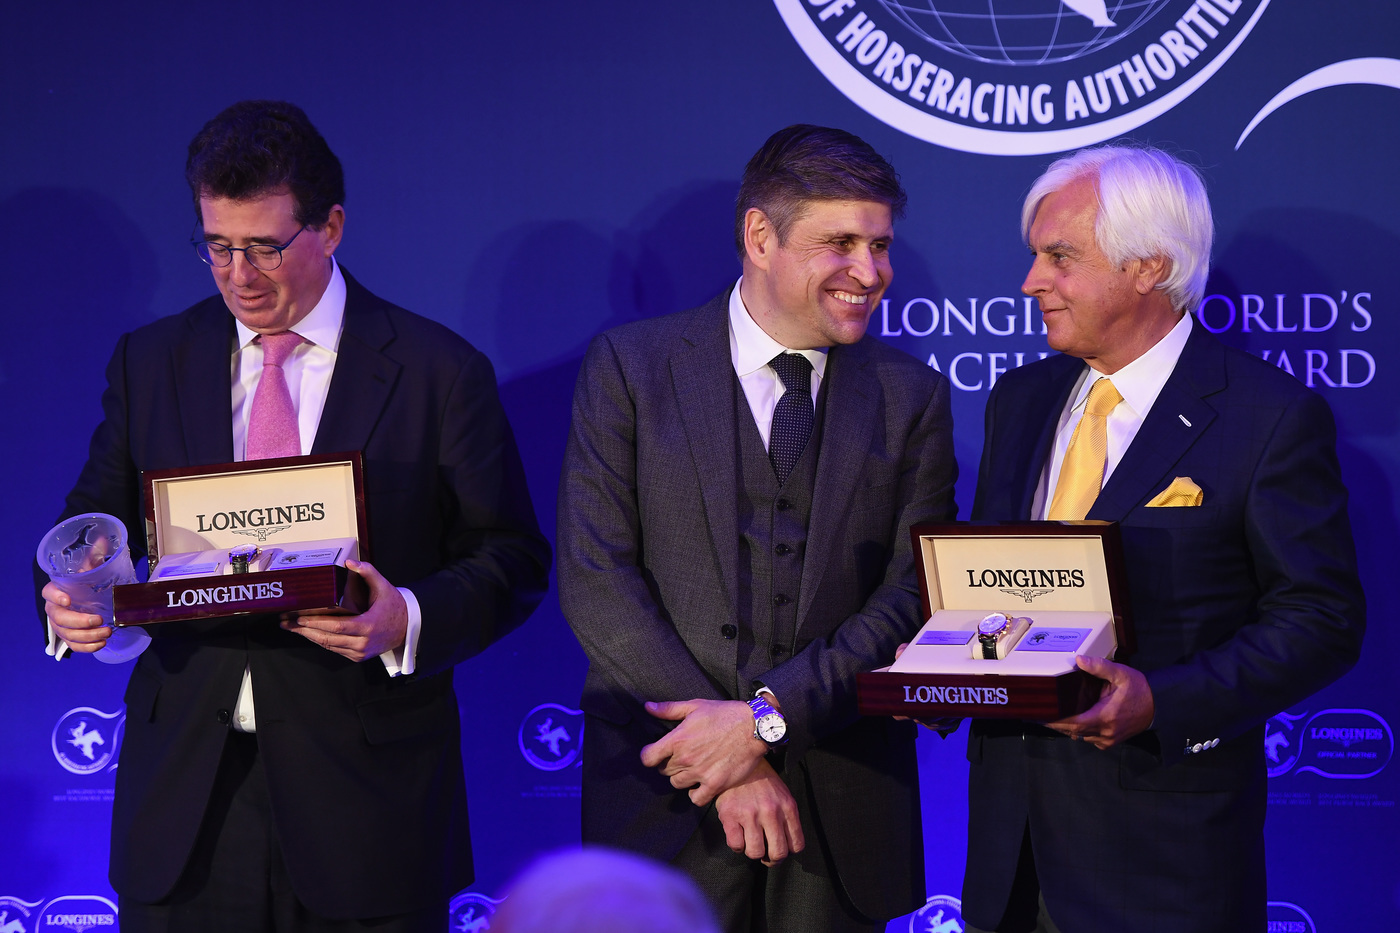 Longines Flat Racing Event: Arrogate crowned the Longines World's Best Racehorse for the second year in a row, Qatar Prix de l'Arc de Triomphe named Longines World's Best Horse Race for the second time 16